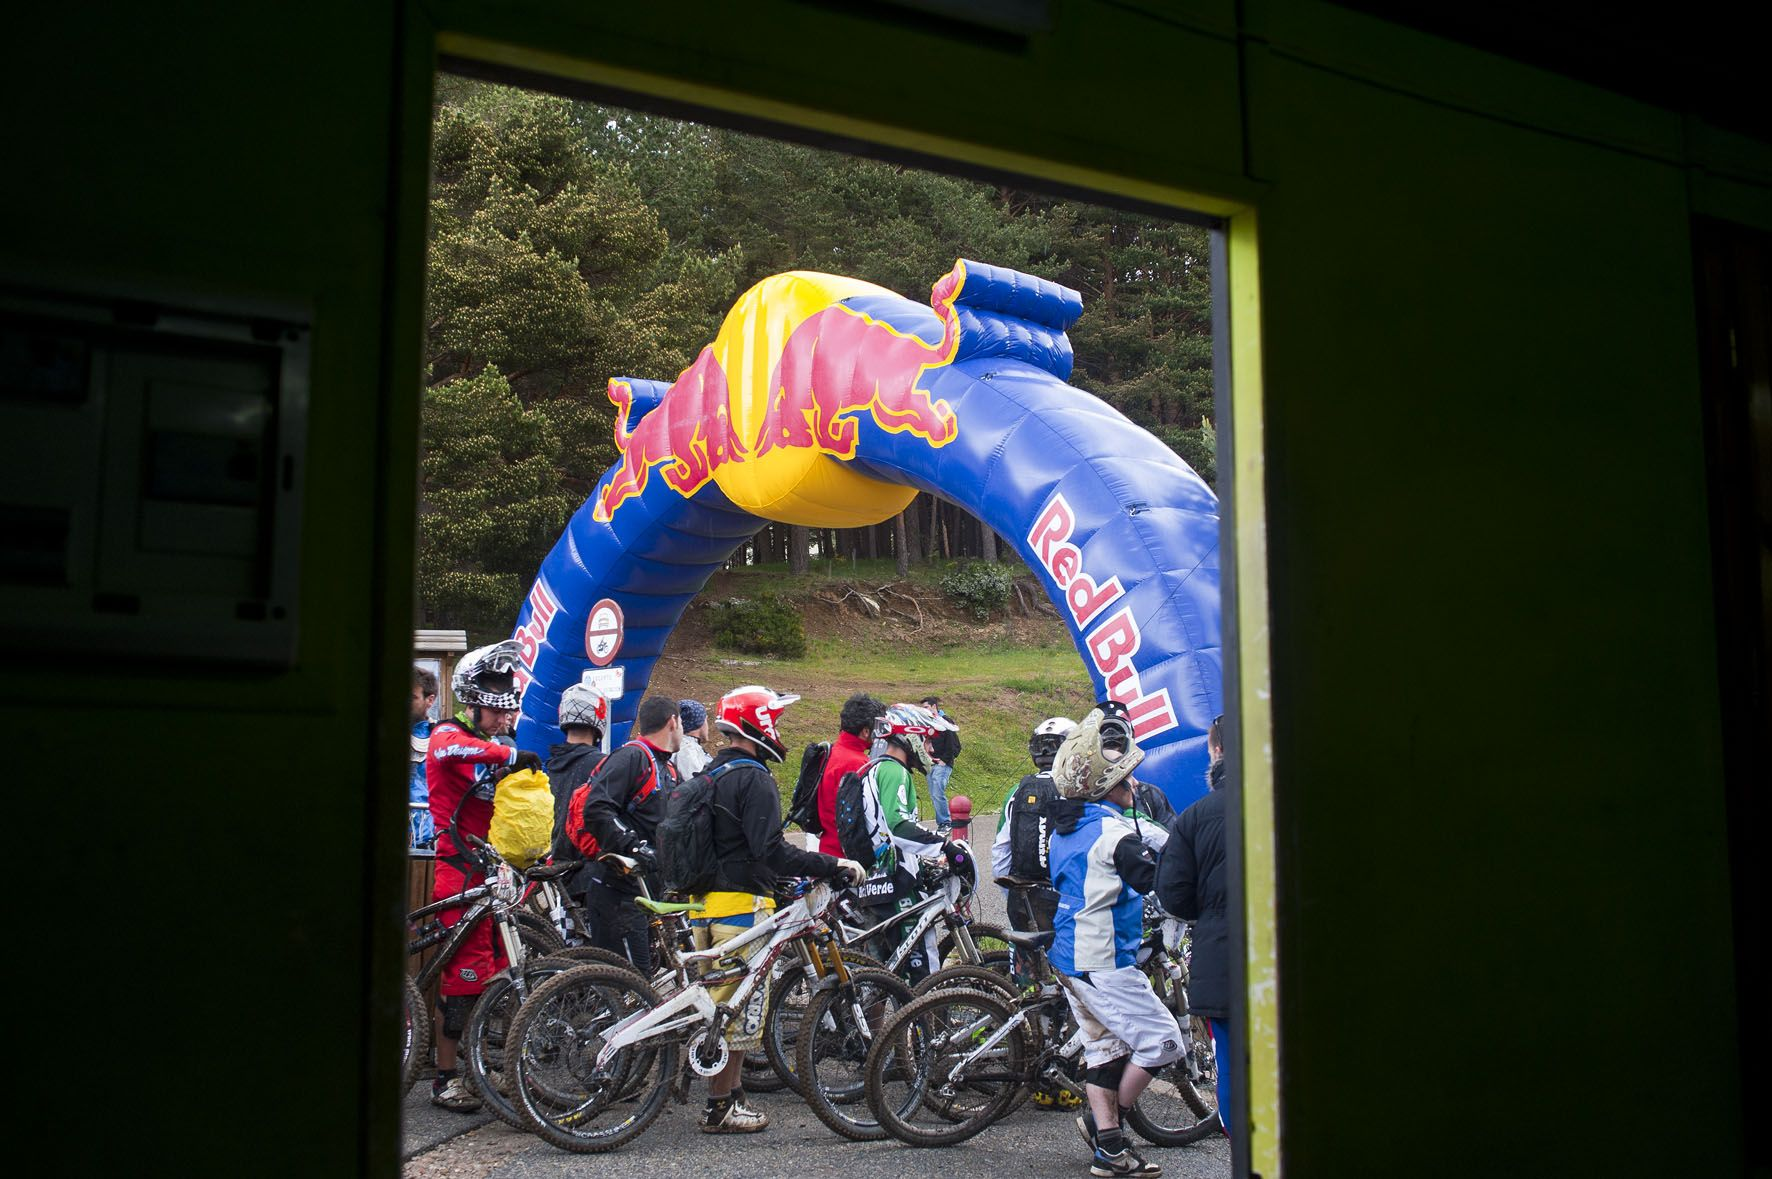 Red Bull Holy Bike En La Pinilla